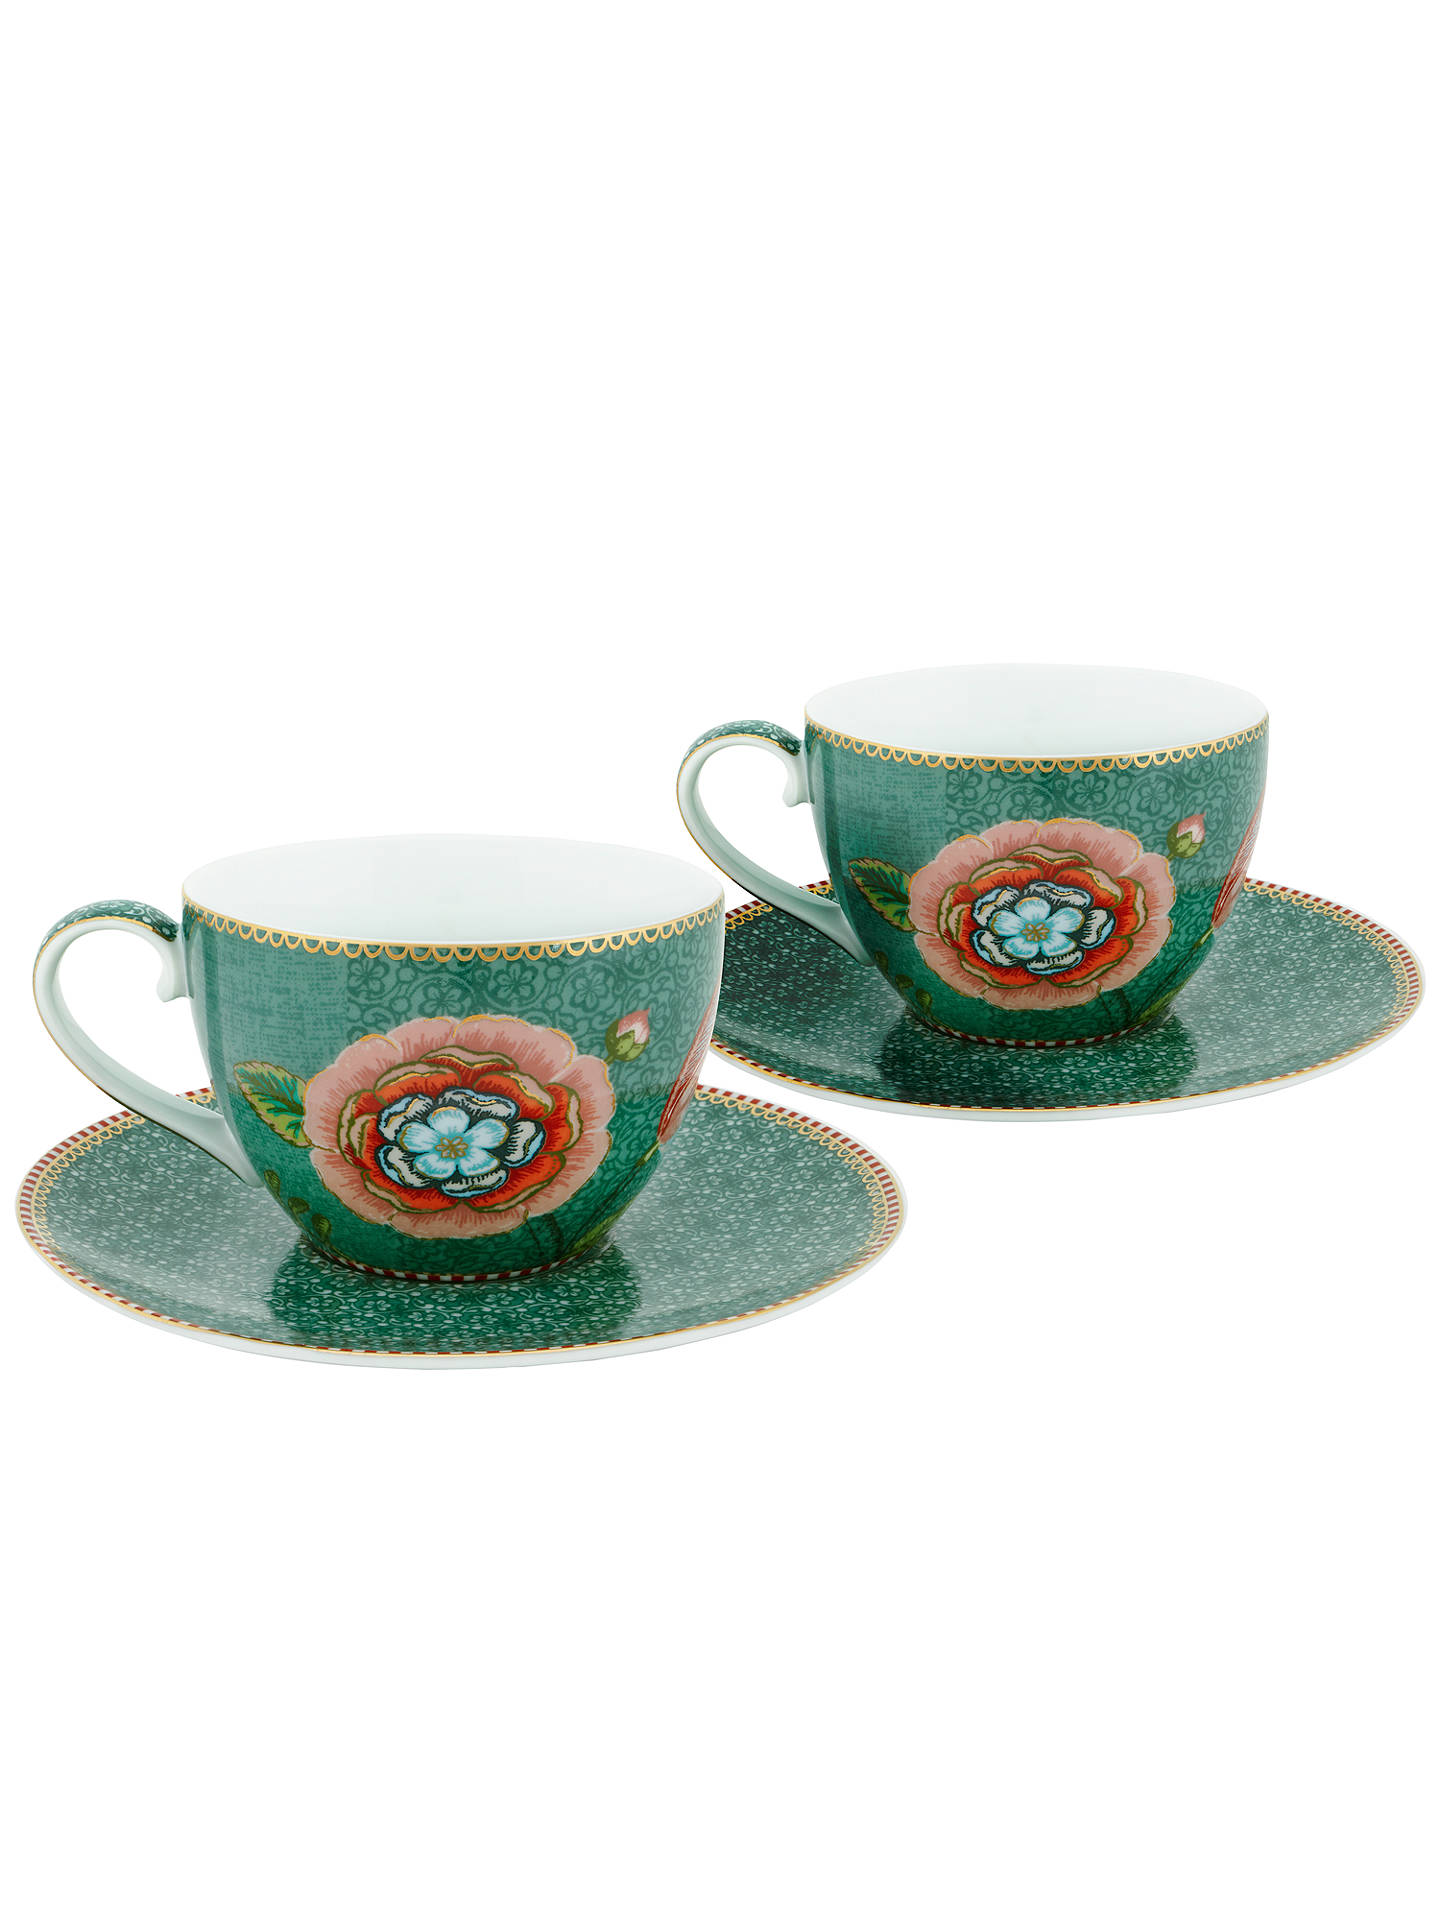 BuyPiP Studio Spring To Life Cup & Saucer, Set of 2, Green Online at johnlewis.com